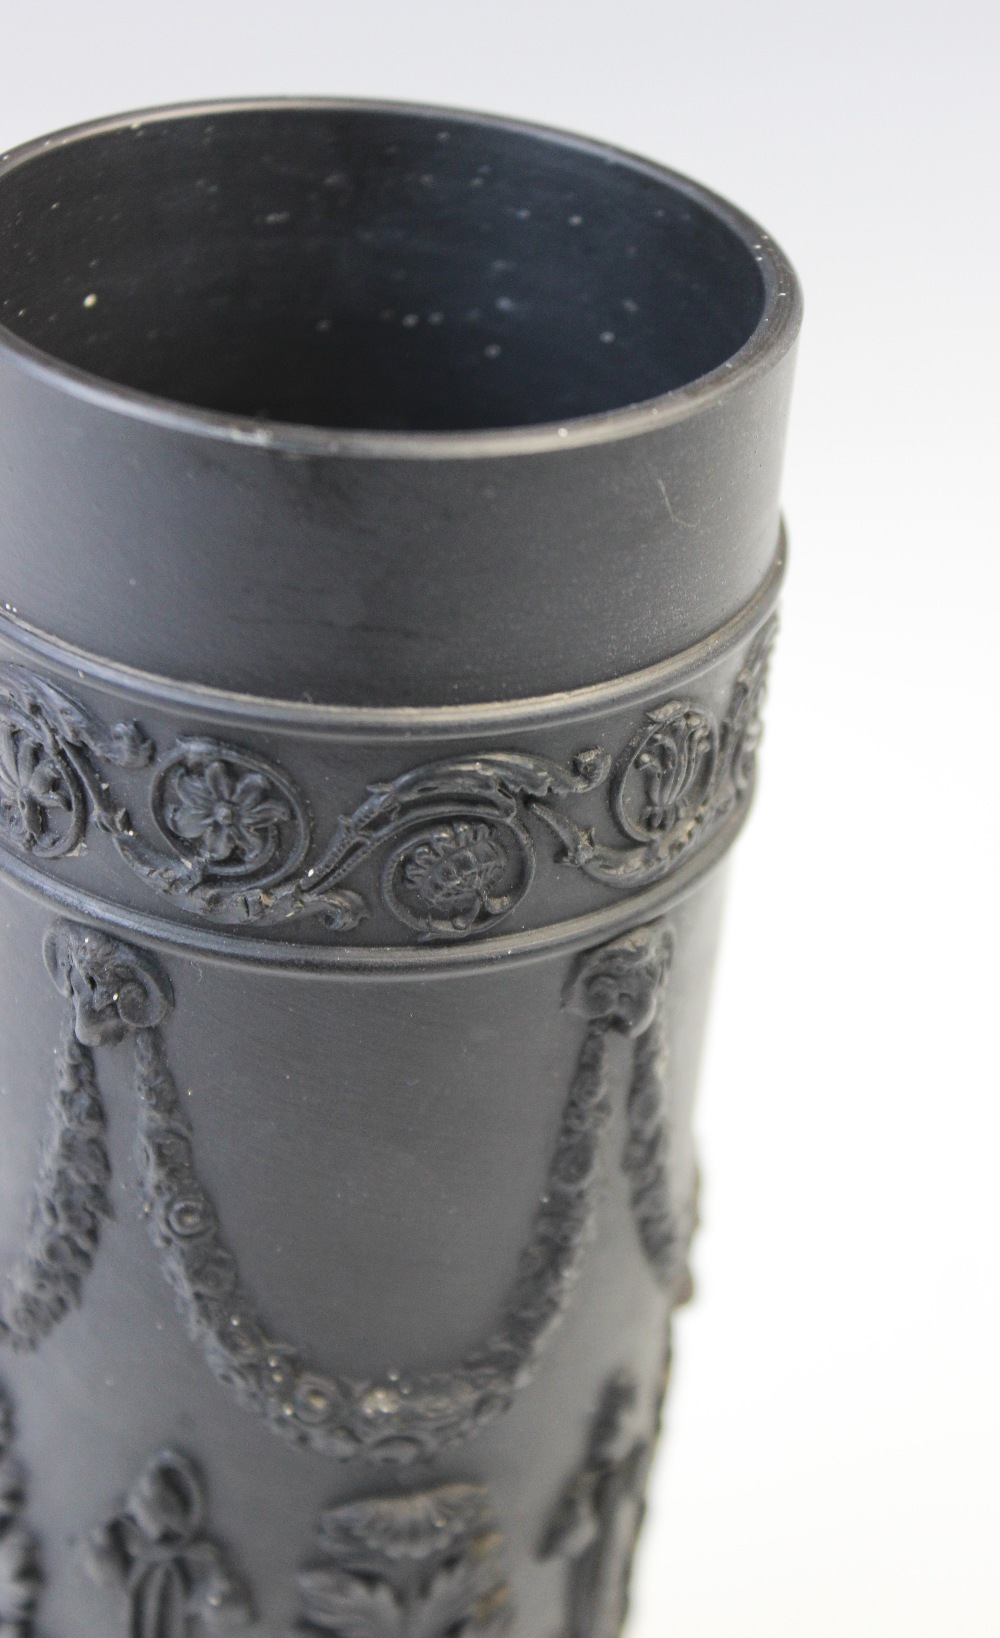 A pair of Wedgwood black basalt cylinder vases, early 20th century, the bodies extensively decorated - Image 3 of 3